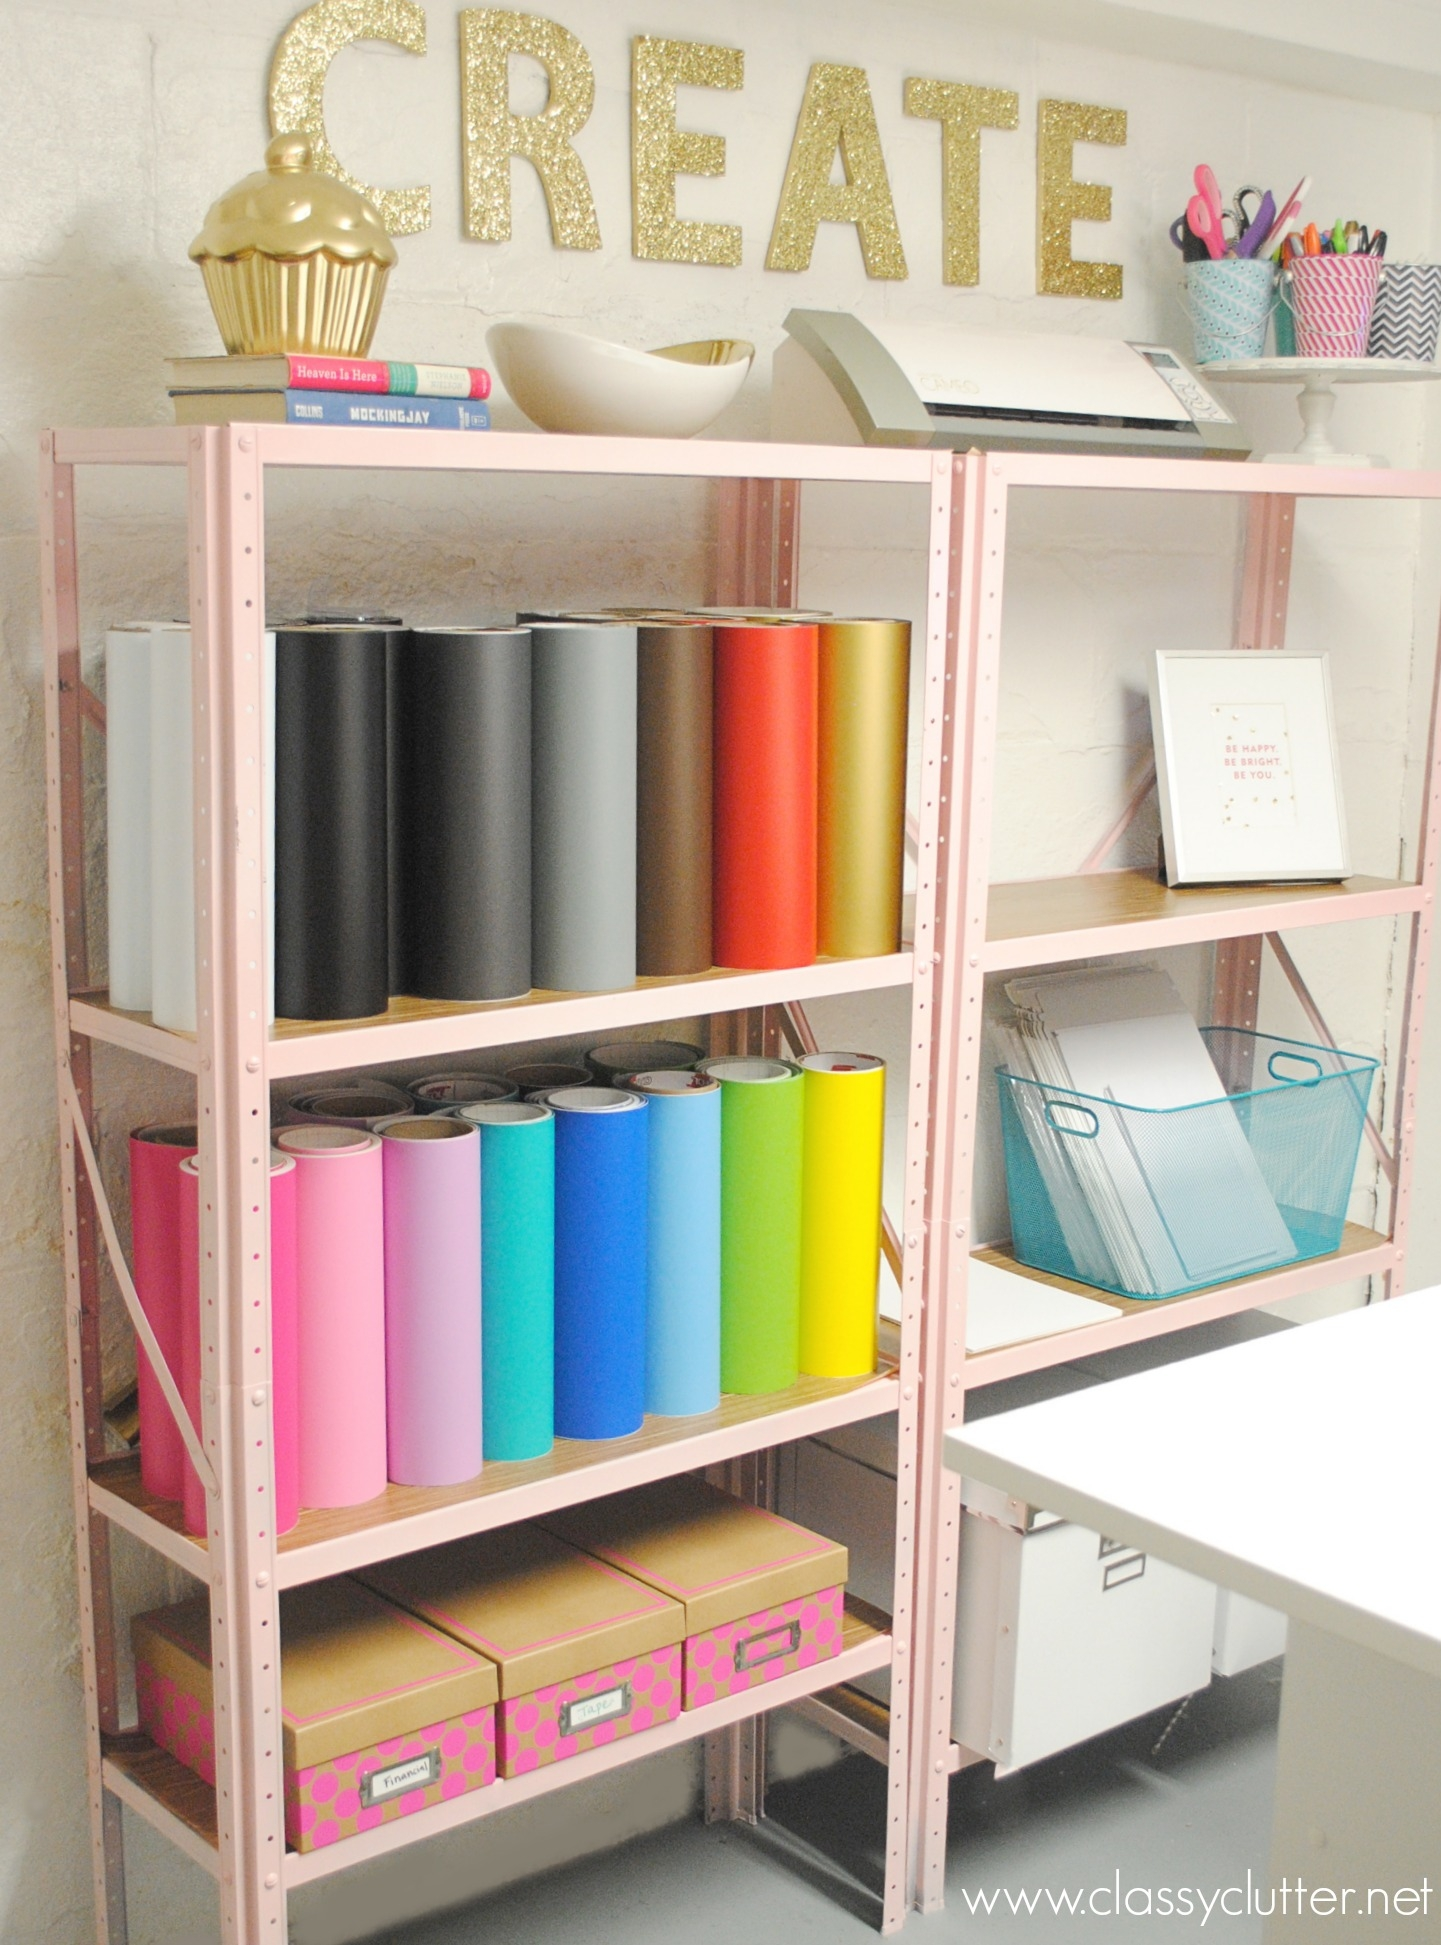 Inexpensive Craft Room Shelving Classy Clutter Pertaining To Painted Shelving Units (#7 of 15)